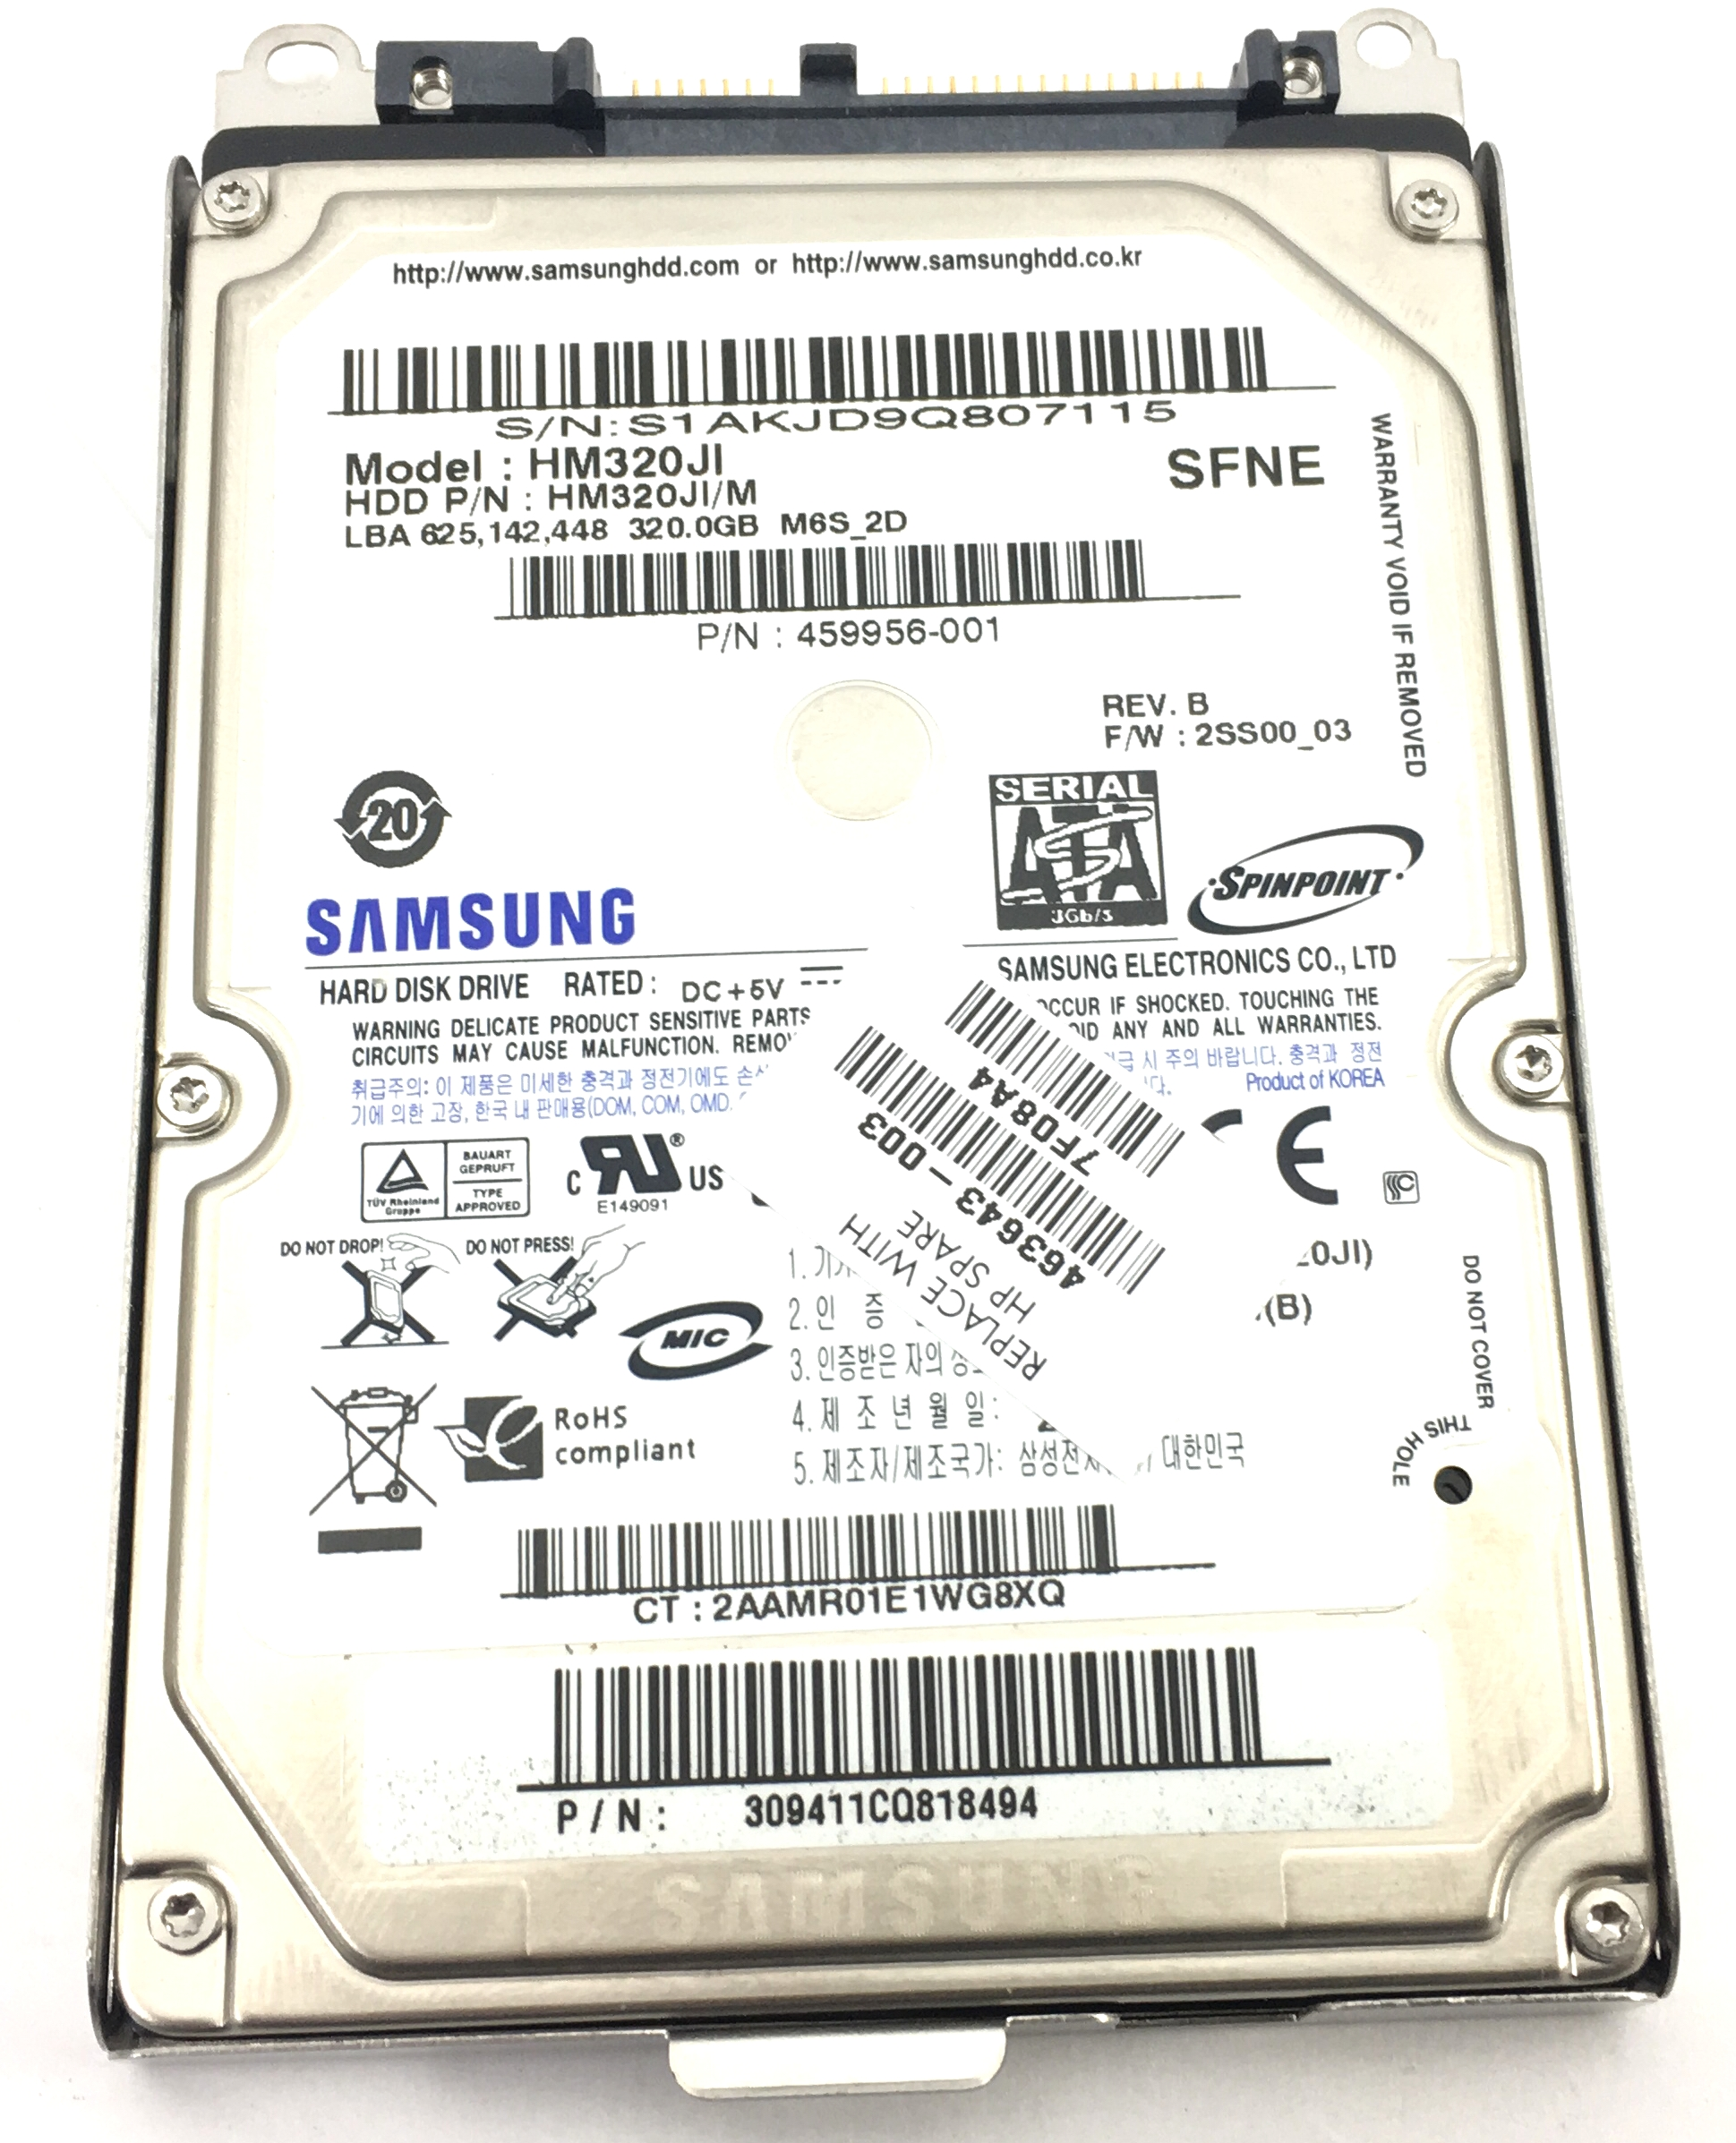 HP Samsung Spinpoint Hm320Ji 320GB 5.4K SATA 2.5'' Hard Drive (463643-003)